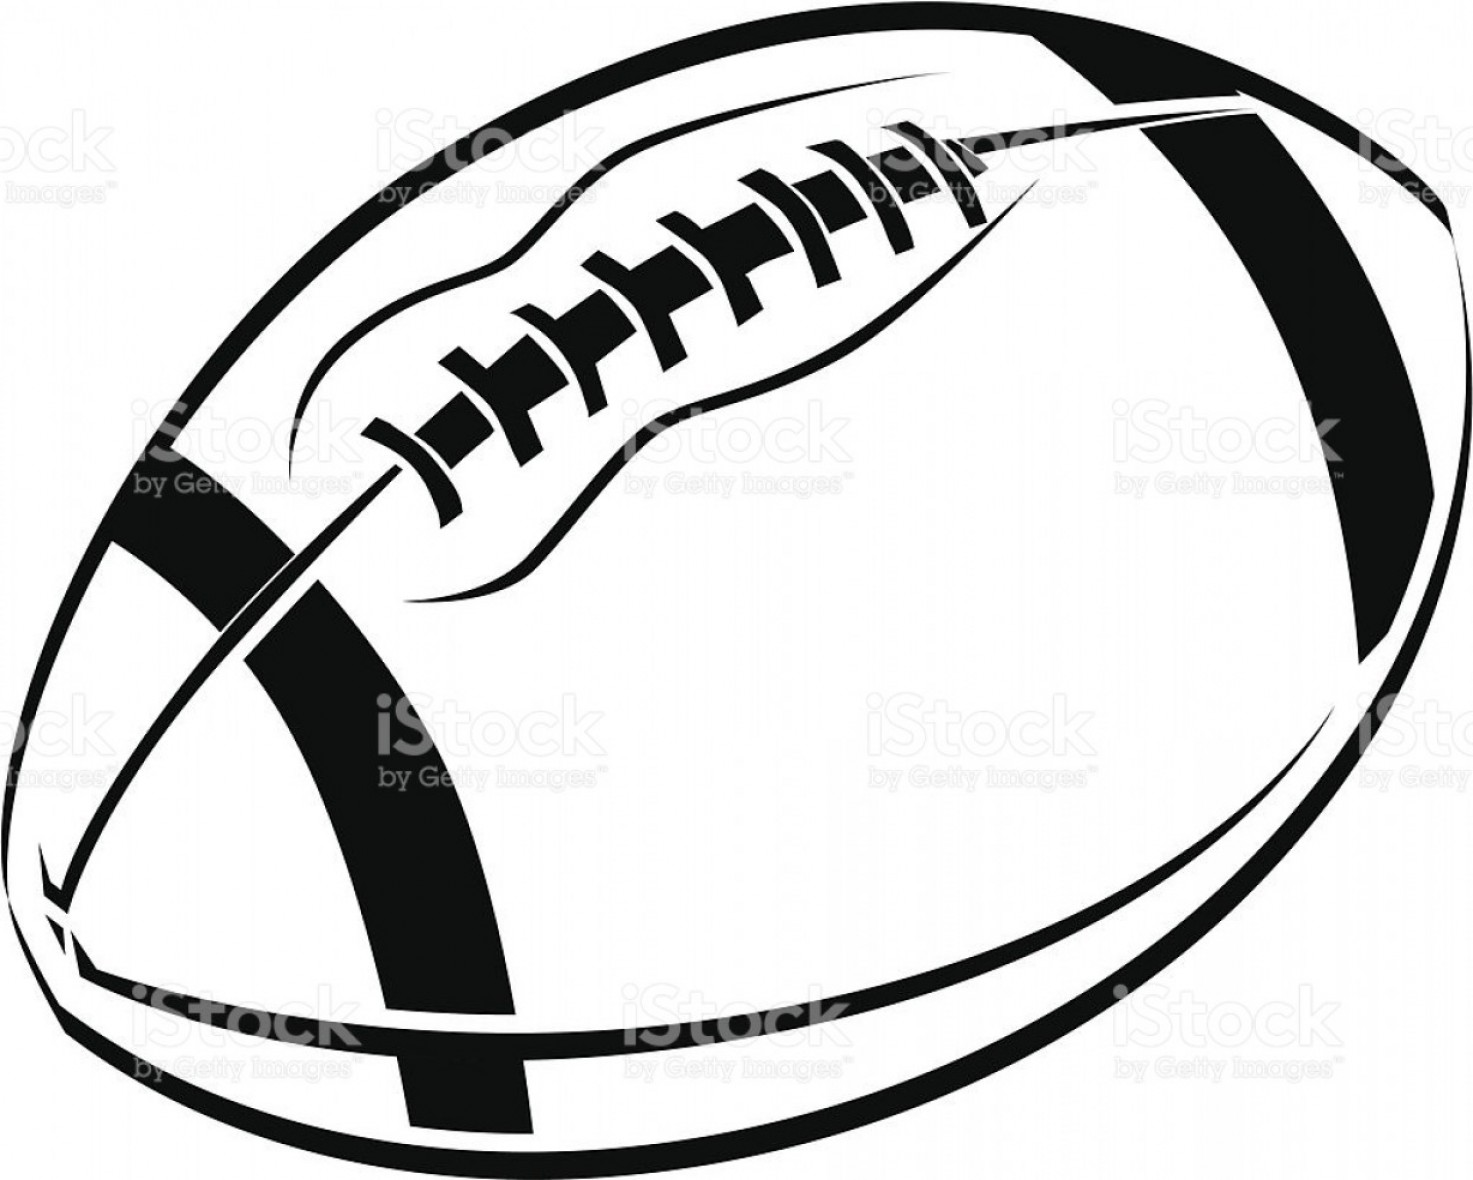 1473x1180 Black And White Line Art Drawing Of An American Football